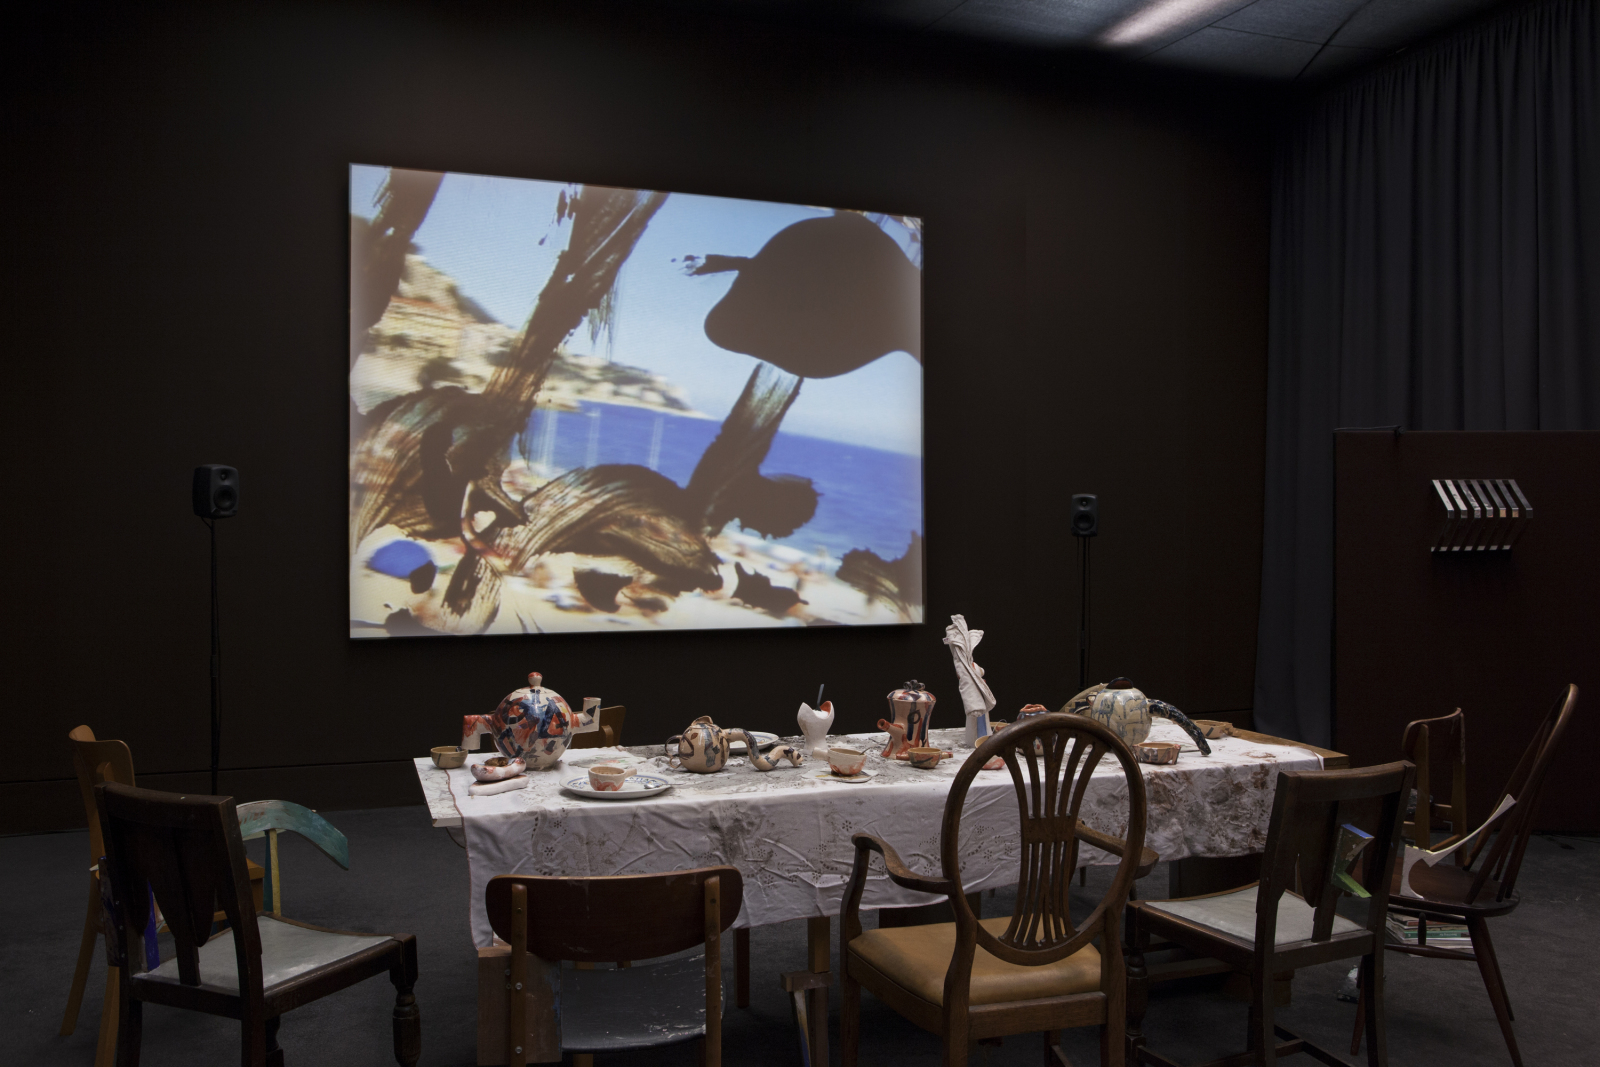 Laure Prouvost, vue de l'installation au Tate Britain, Londres, 2013, techniques mixtes, vidéo. Courtesy de Mot International (Bruxelles - Londres).